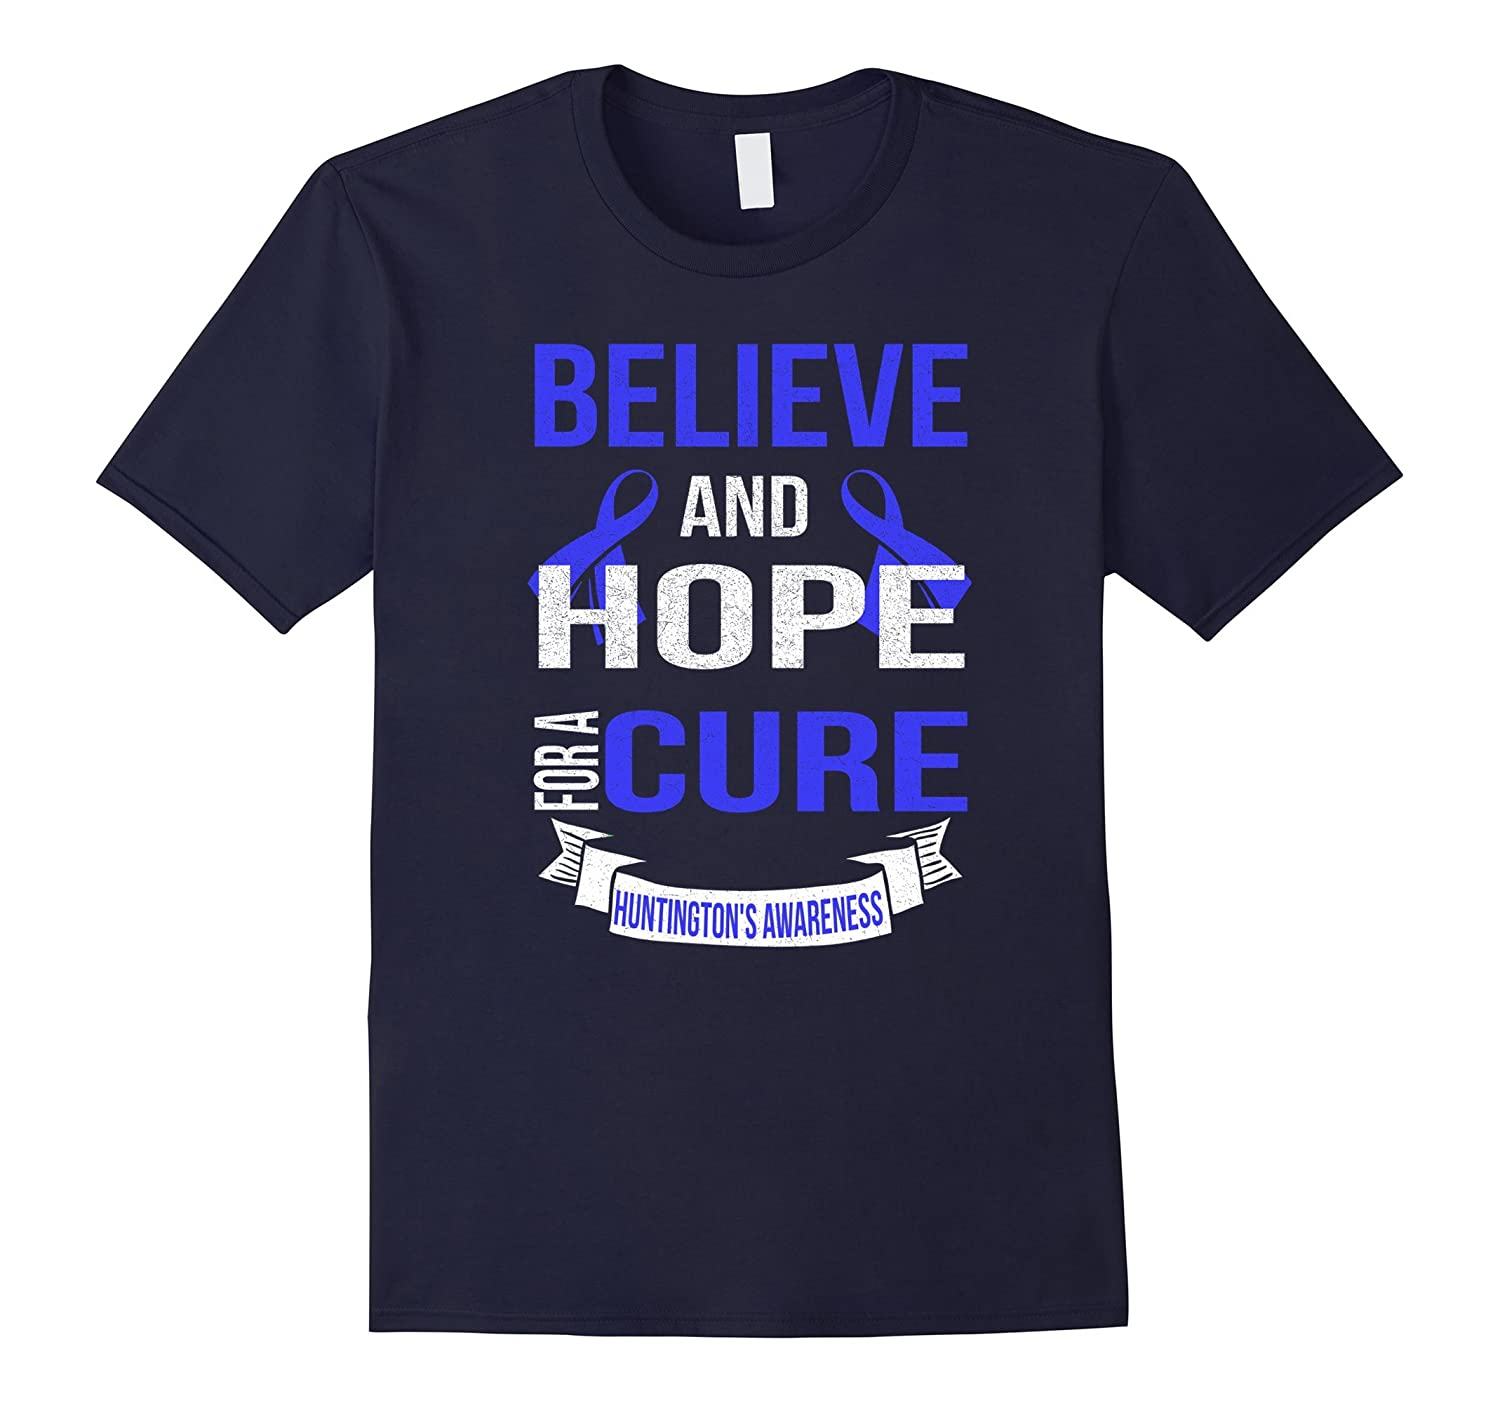 Believe and hope for a cure huntington's disease awareness-TH